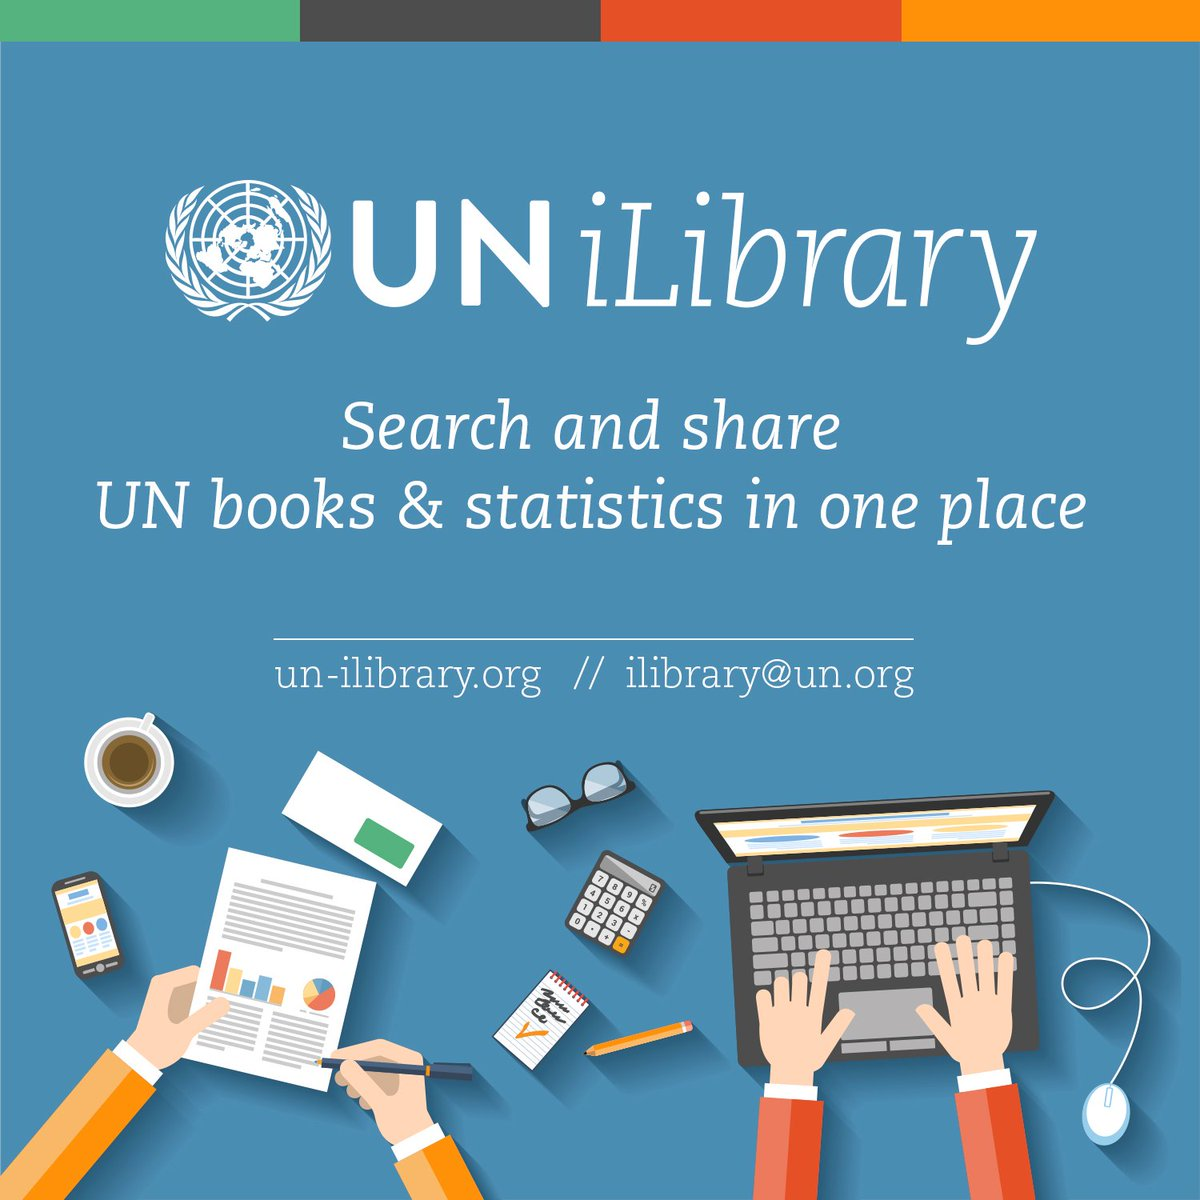 For the 1st time #UN books, reports, stats are available in one place for easy search &amp; share. Try #UNiLibrary today  http://www. un-ilibrary.org / &nbsp;  <br>http://pic.twitter.com/2pfkSMV68x